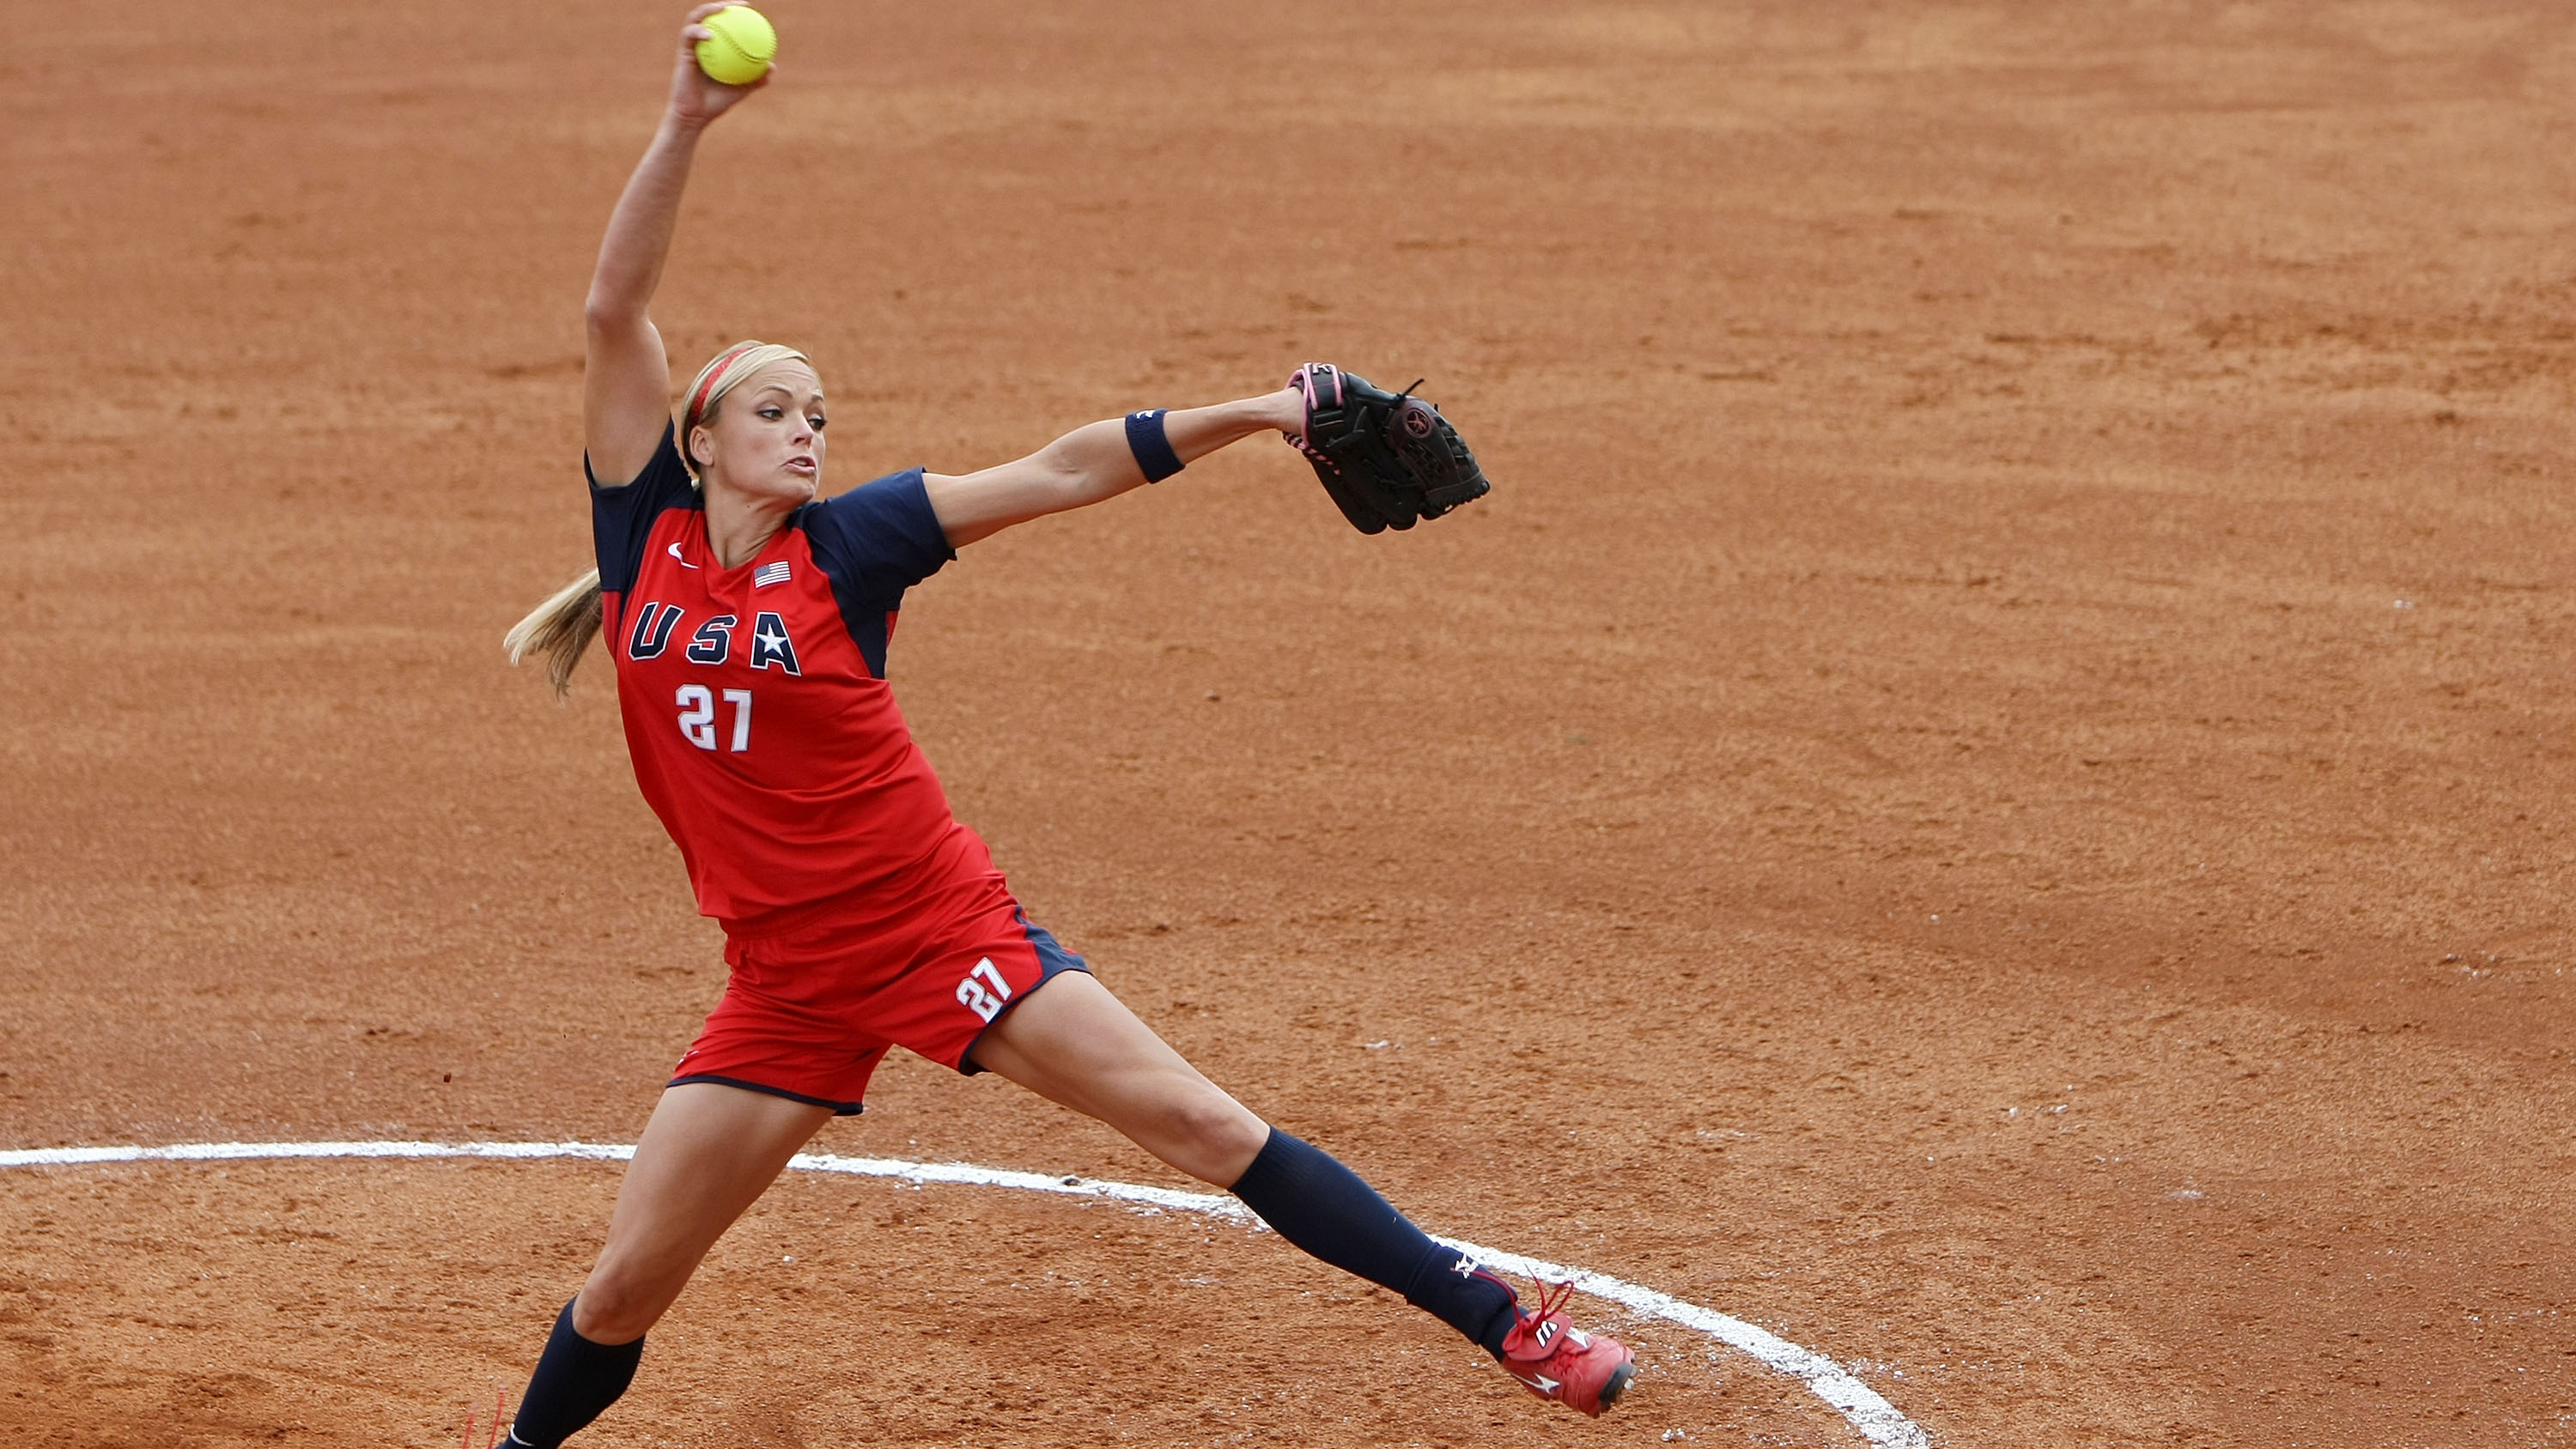 Jennie Finch to be guest manager for independent team | SI.com